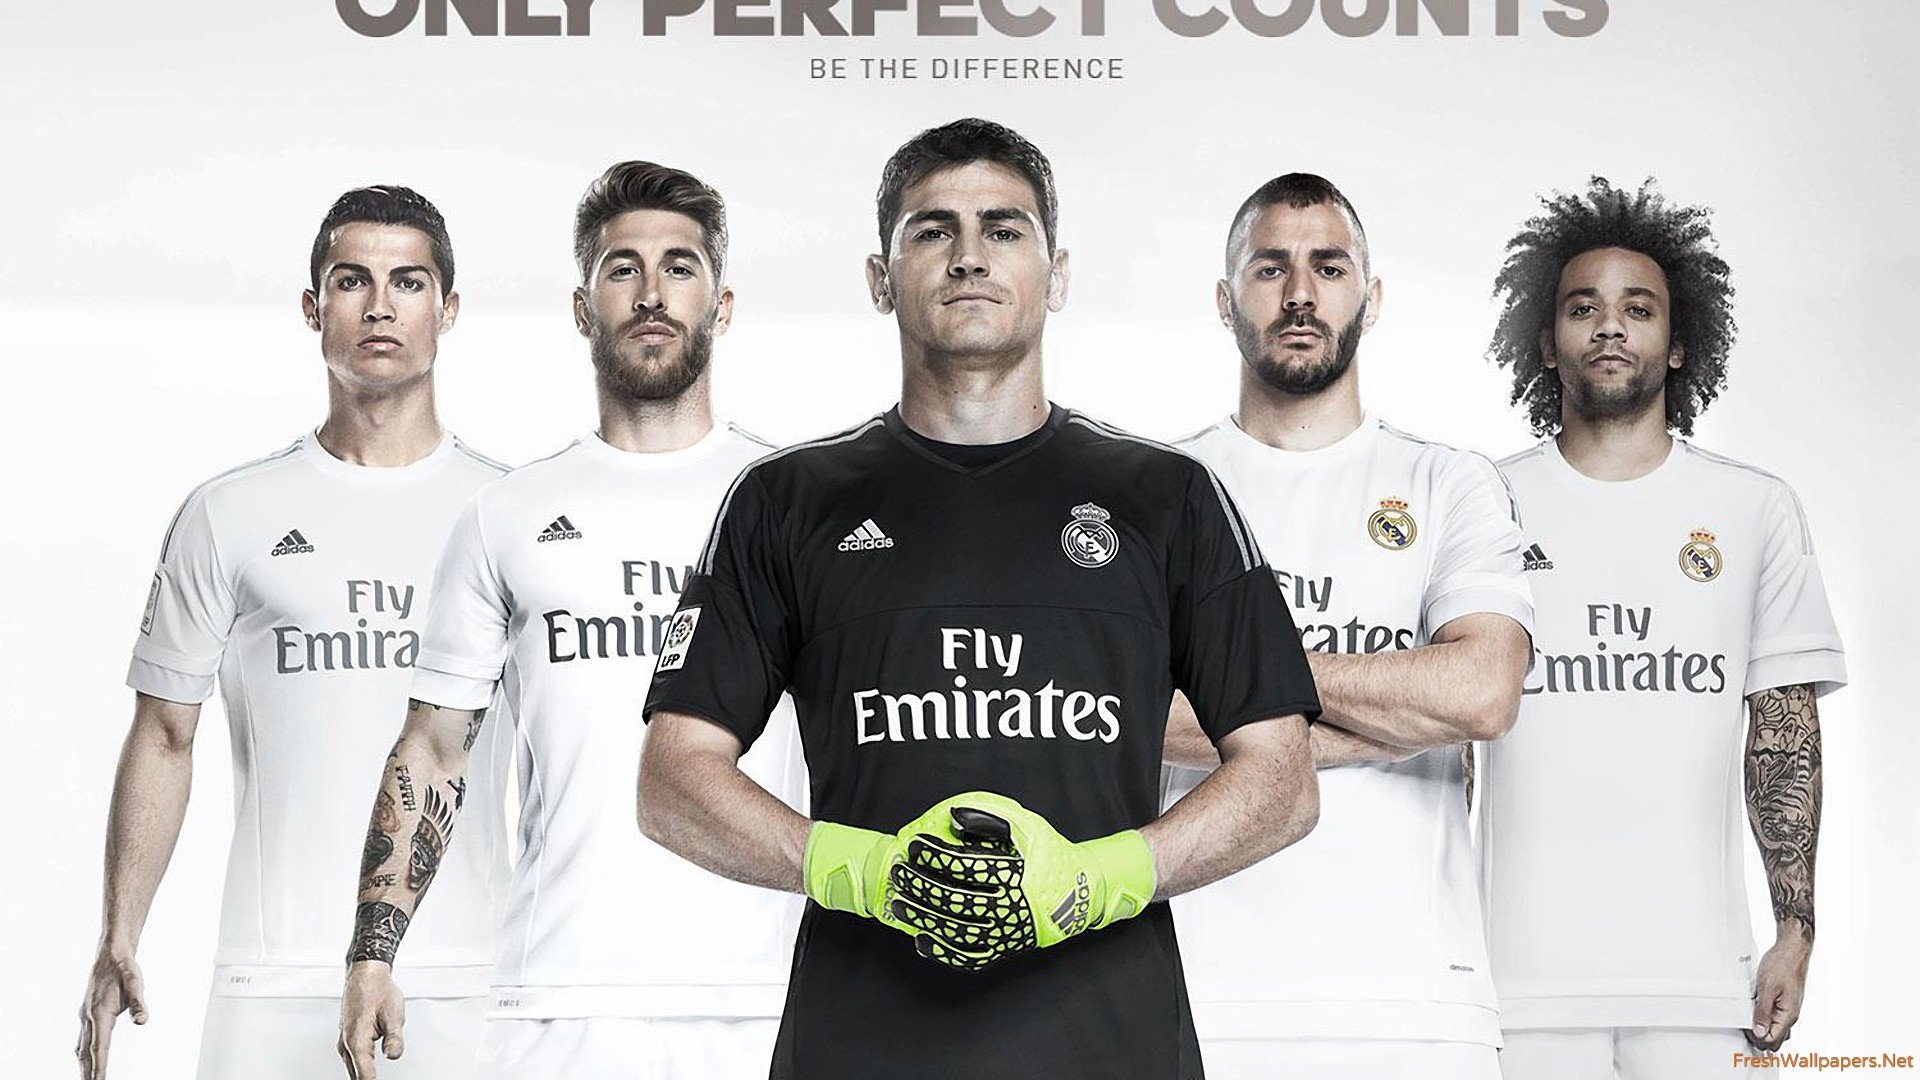 real madrid cf 2015-2016 adidas home kit wallpapers | freshwallpapers